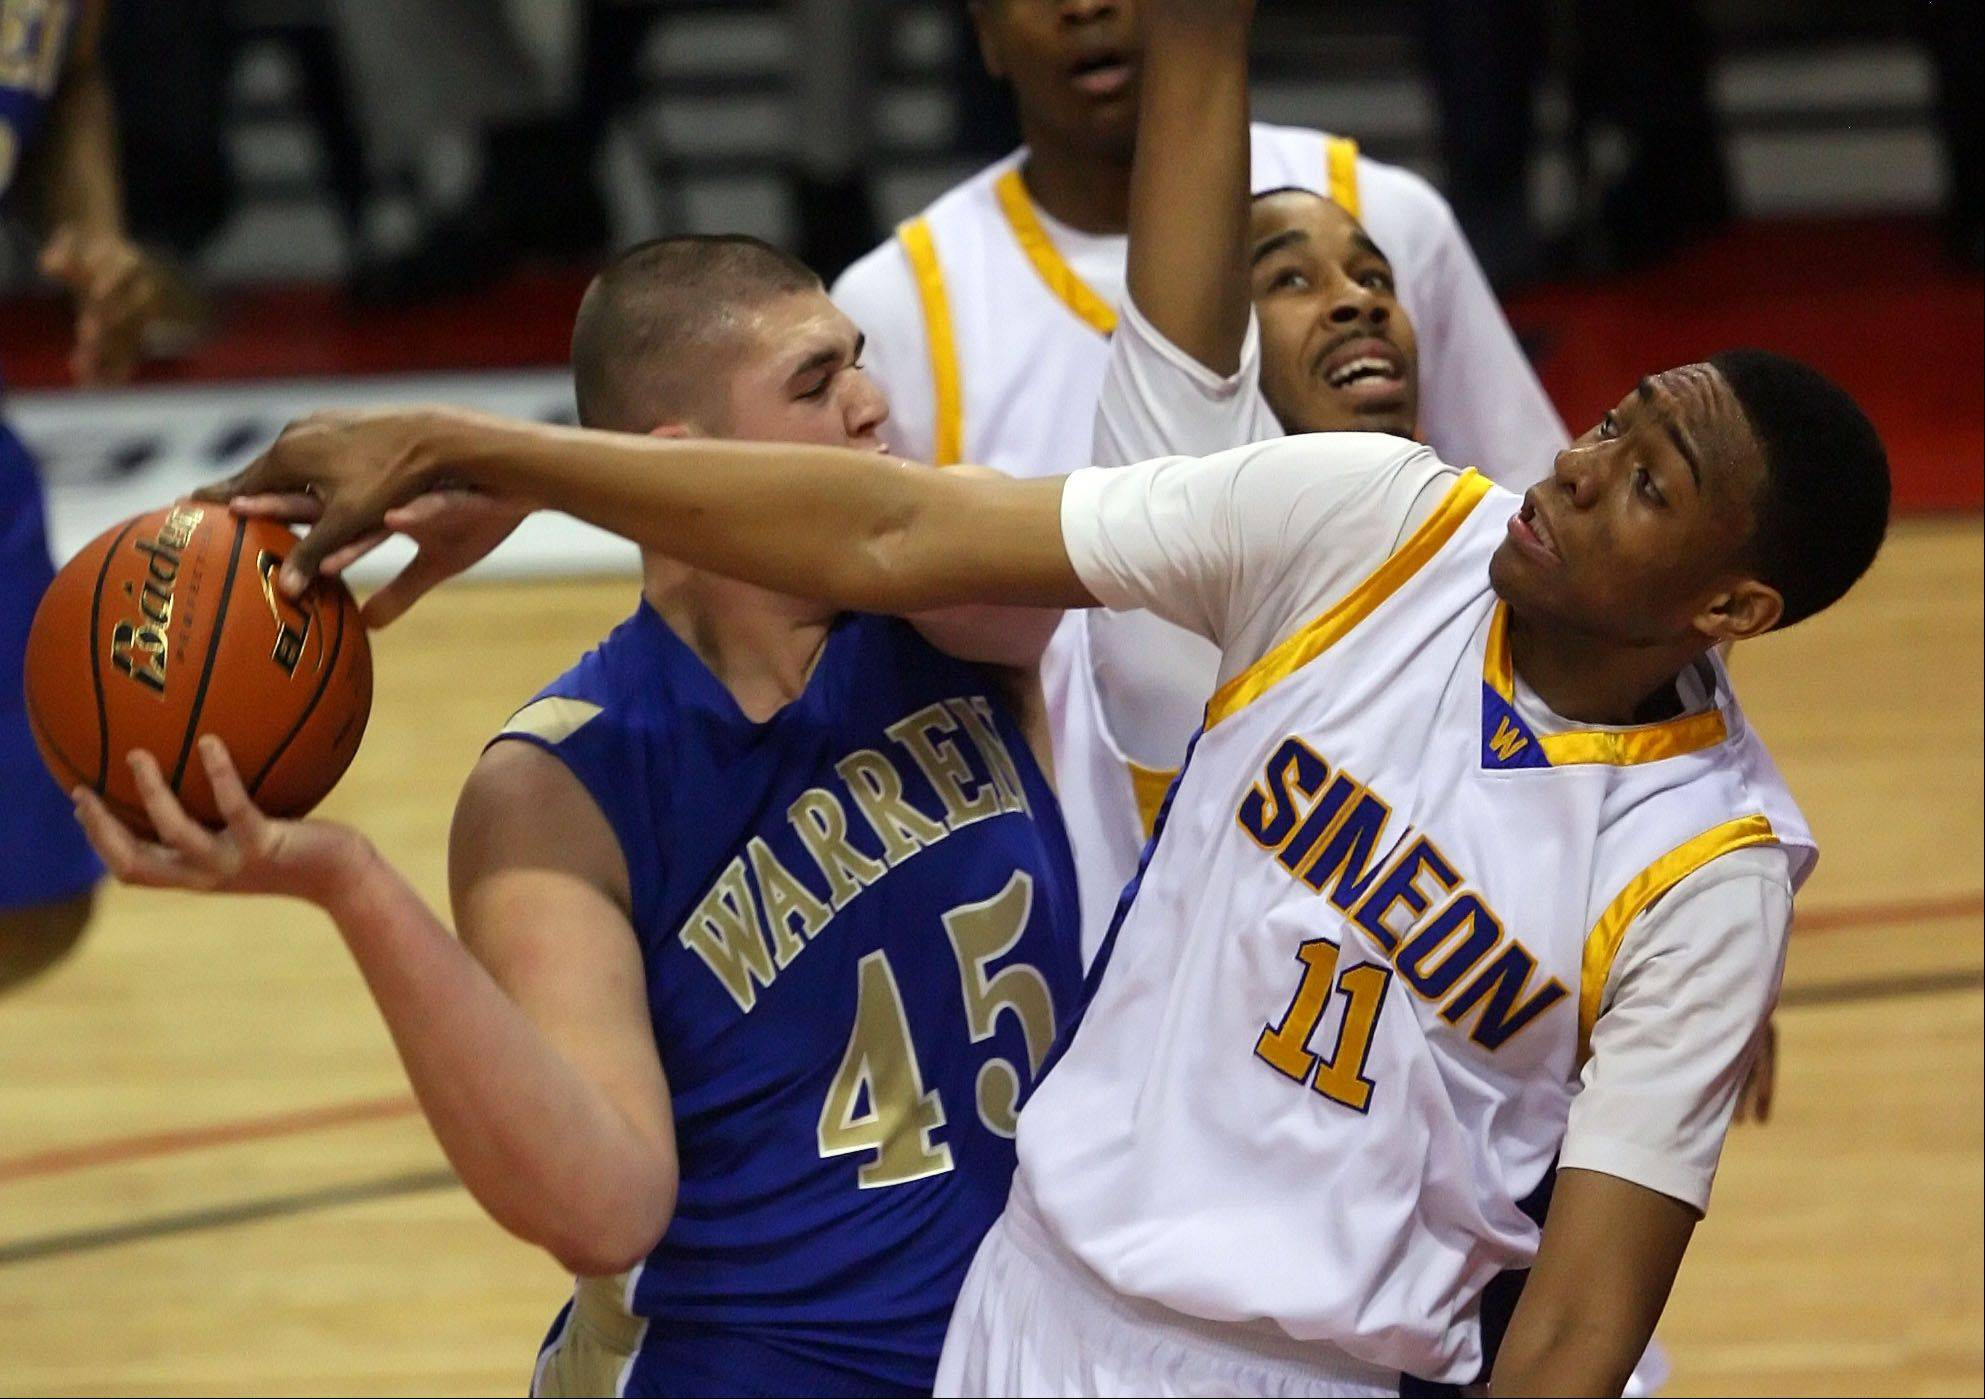 Simeon's Jabari Parker, here trying to stop Warren's Nathan Boothe in the 2012 IHSA Class 4A state championship game, is expected to declare his college choice on Dec. 20.